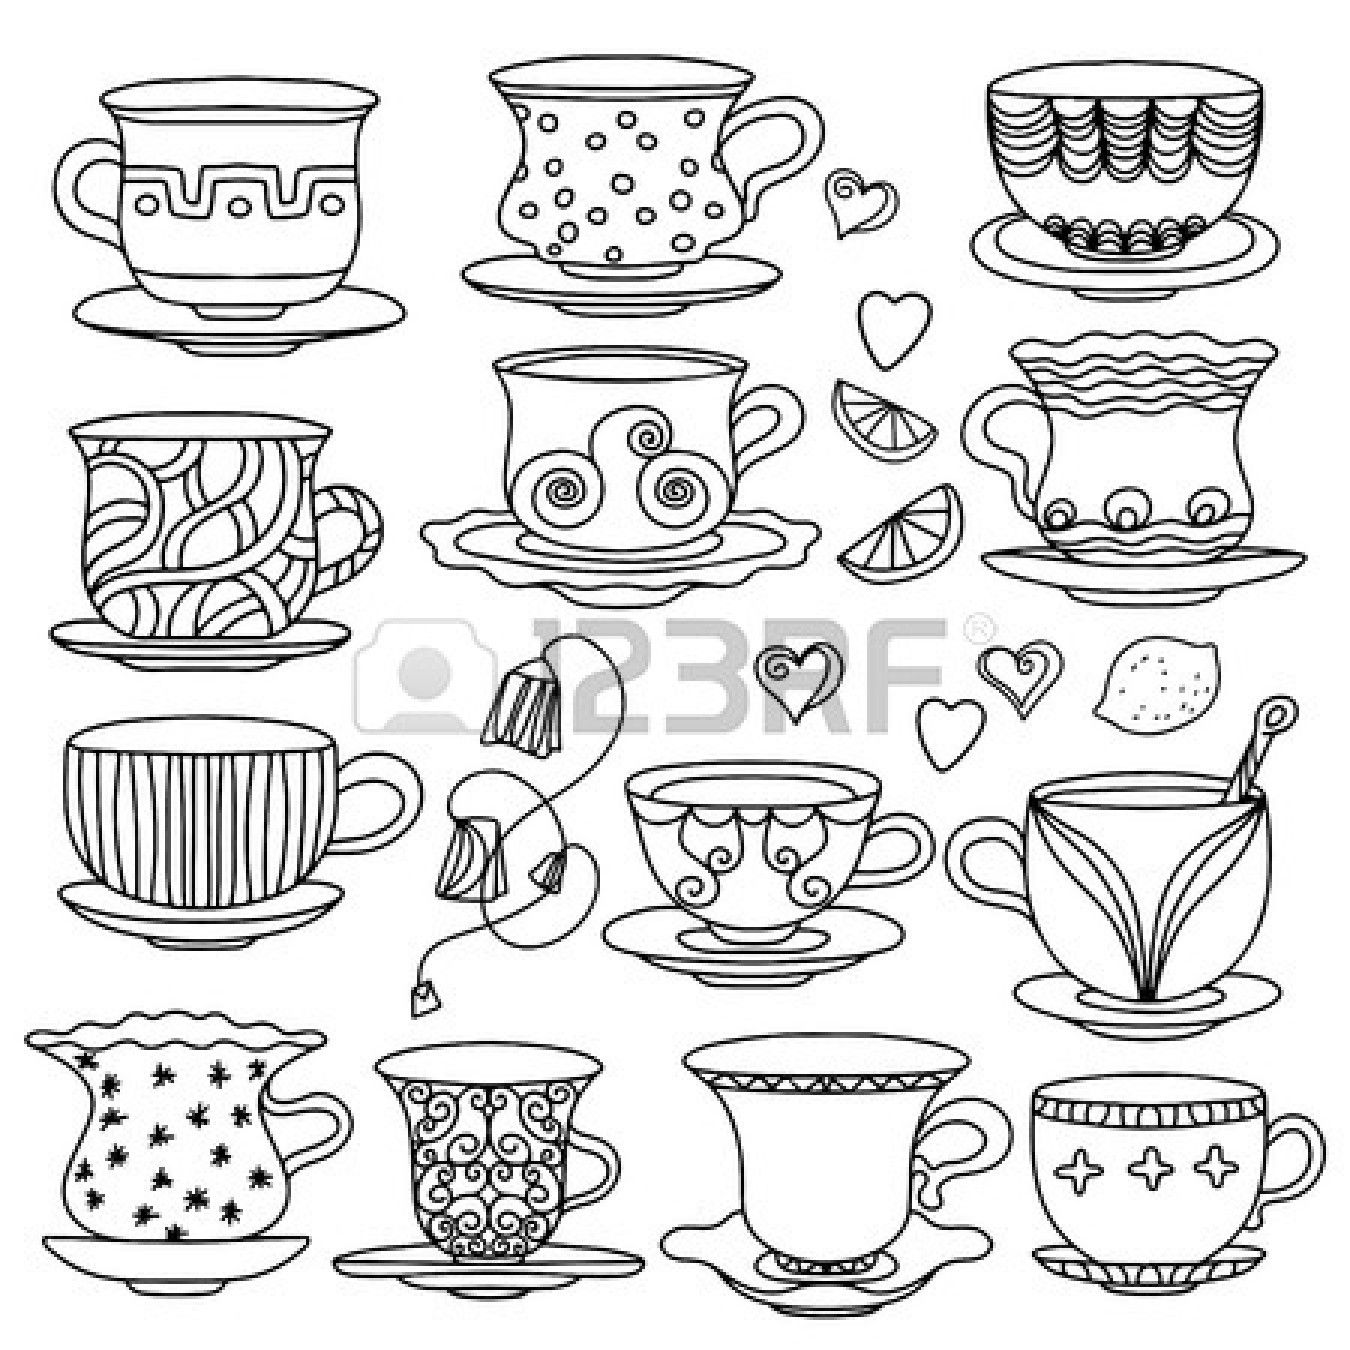 Cup of Coffee or Tea Zentangle Coloring Pages Shutterstock